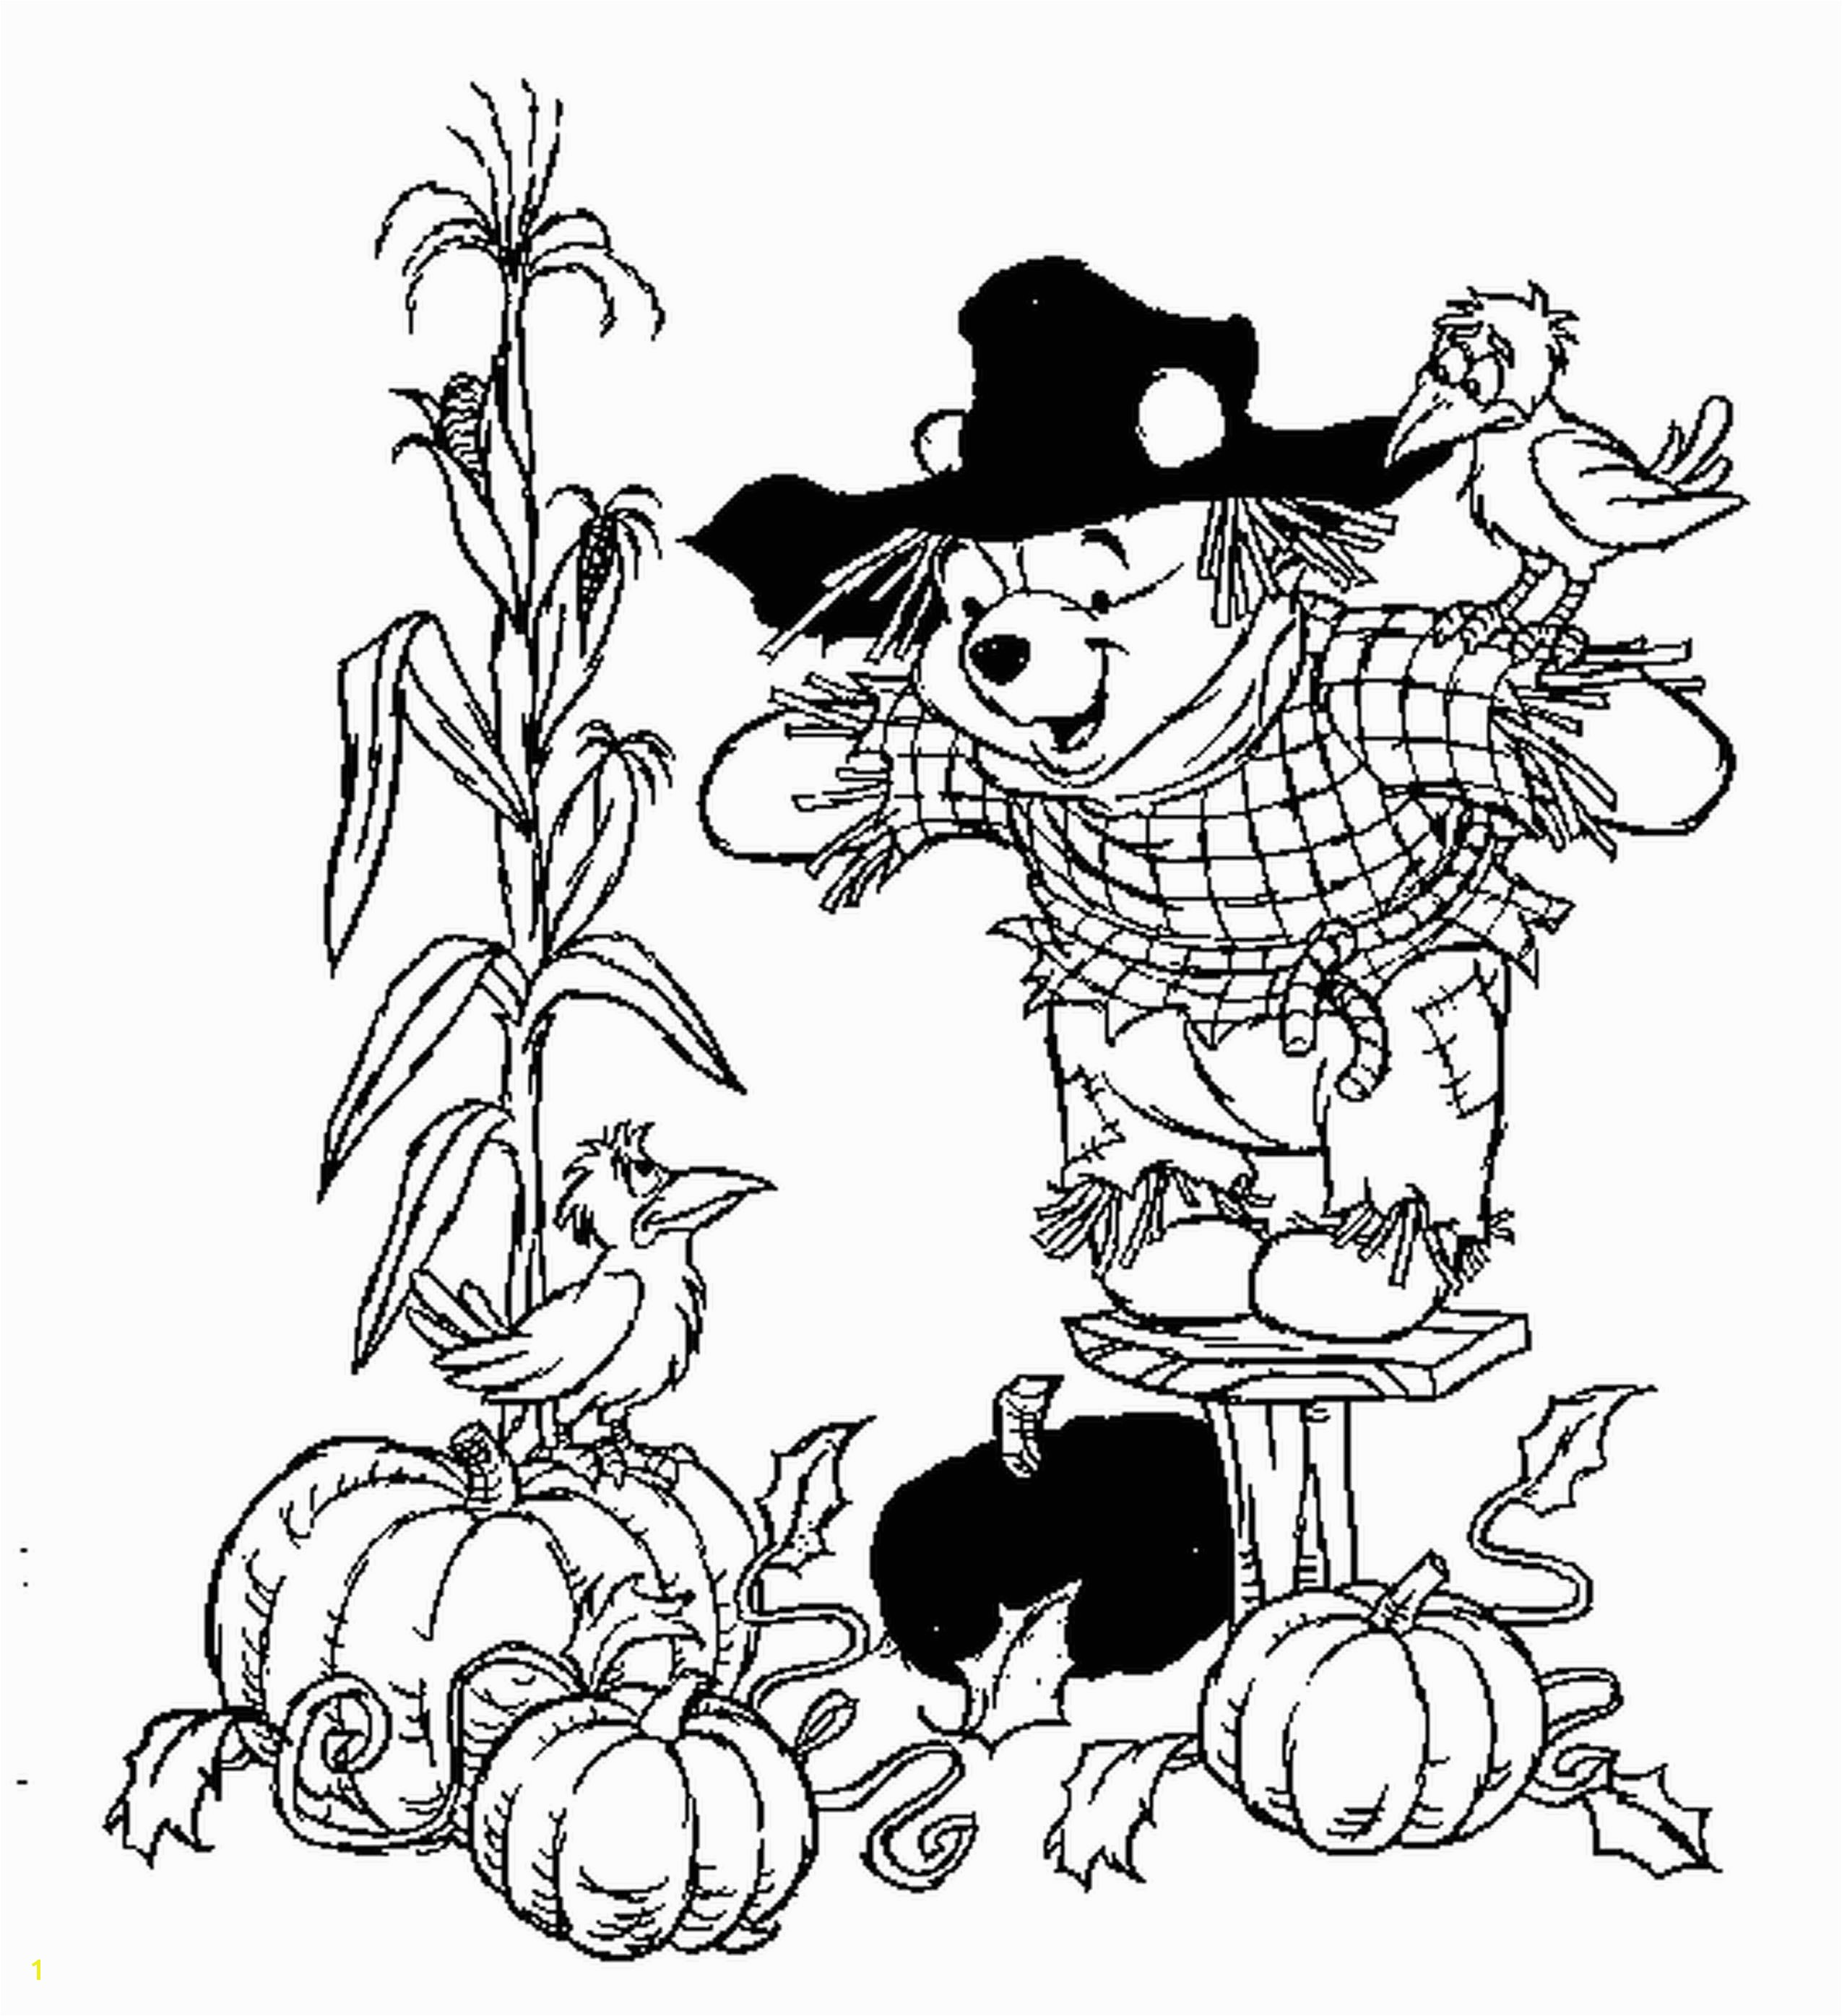 fall themed coloring pages fall themed coloring pages to print divyajananiorg themed coloring pages fall